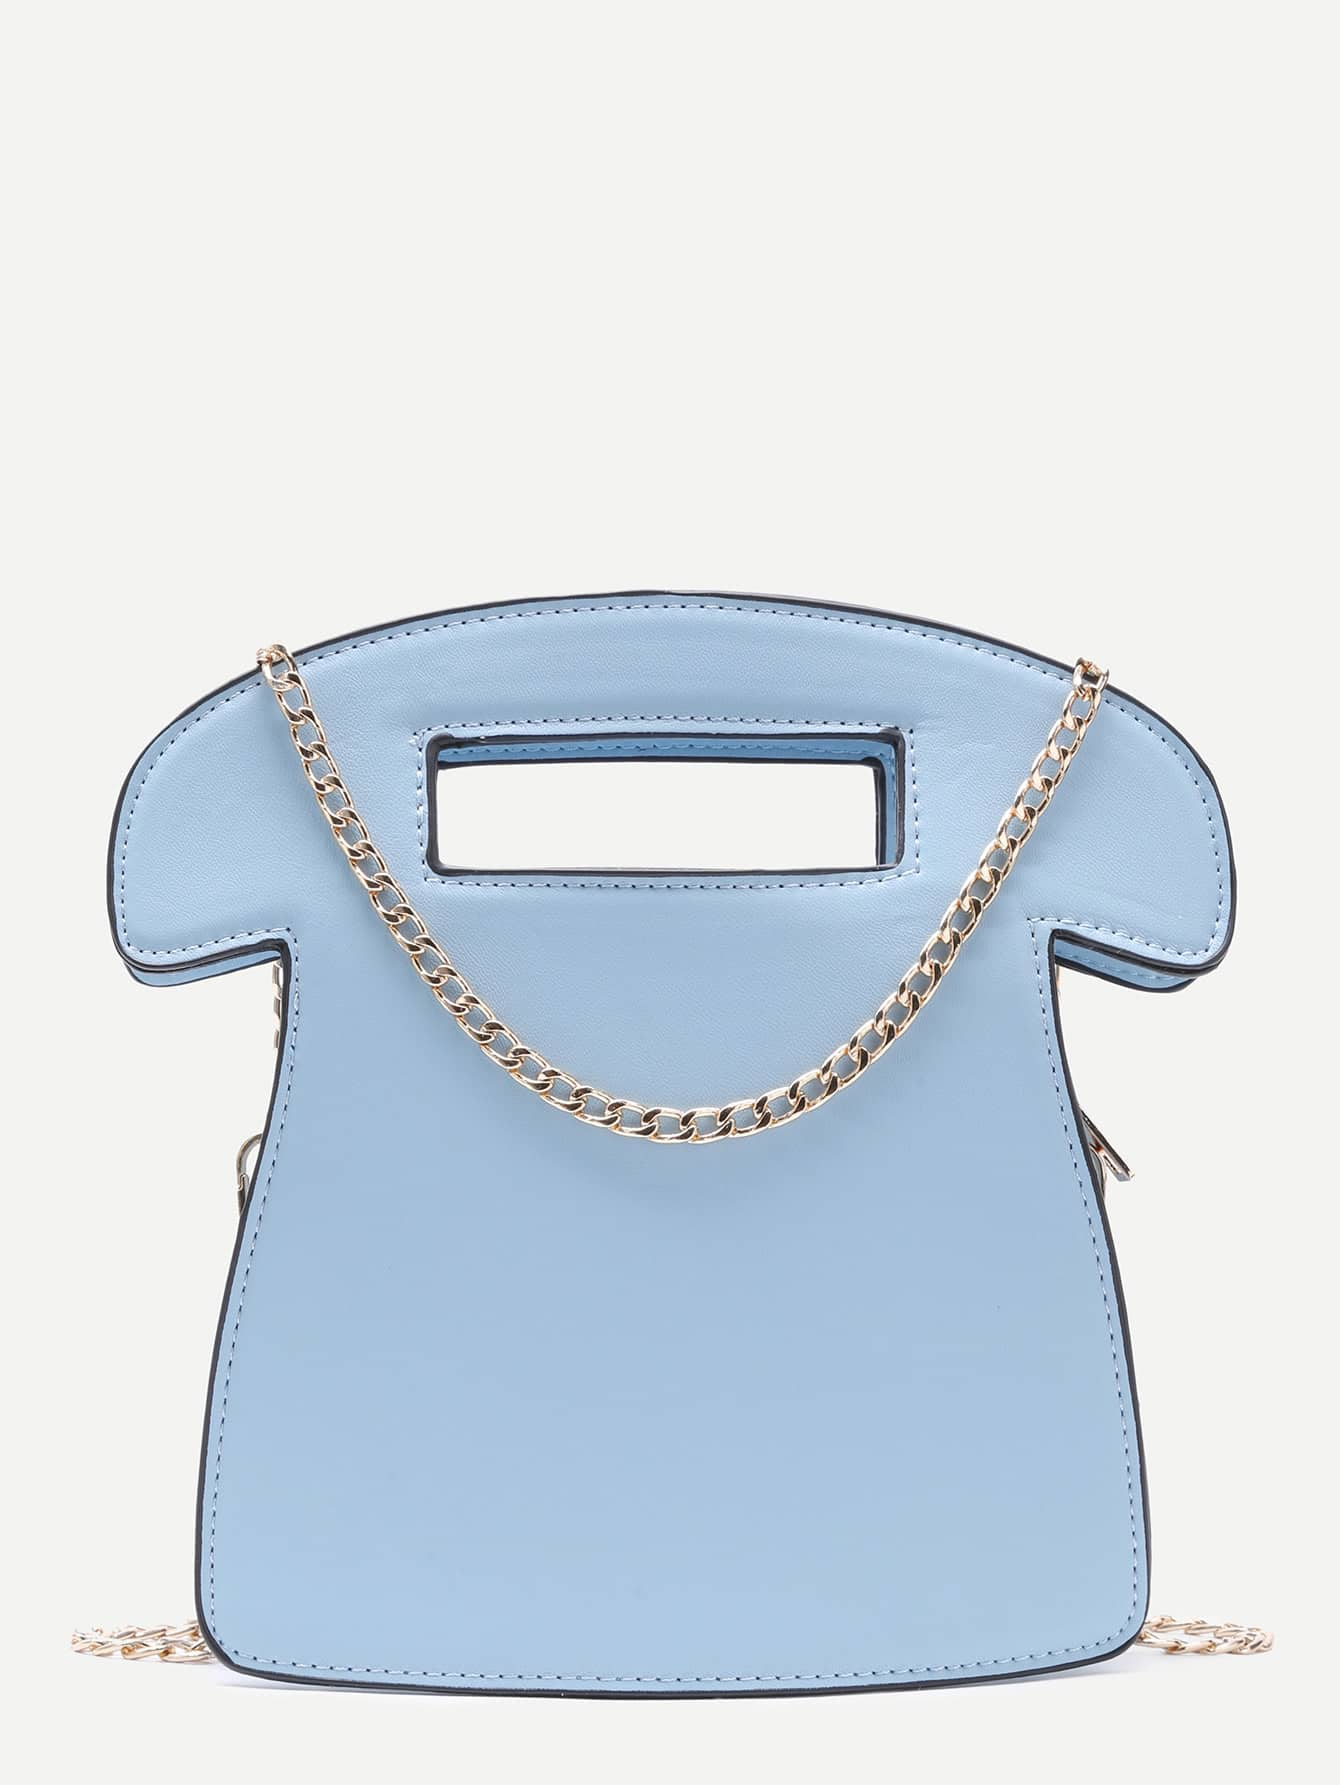 Blue Call Me Tel Bag With Chain Strap